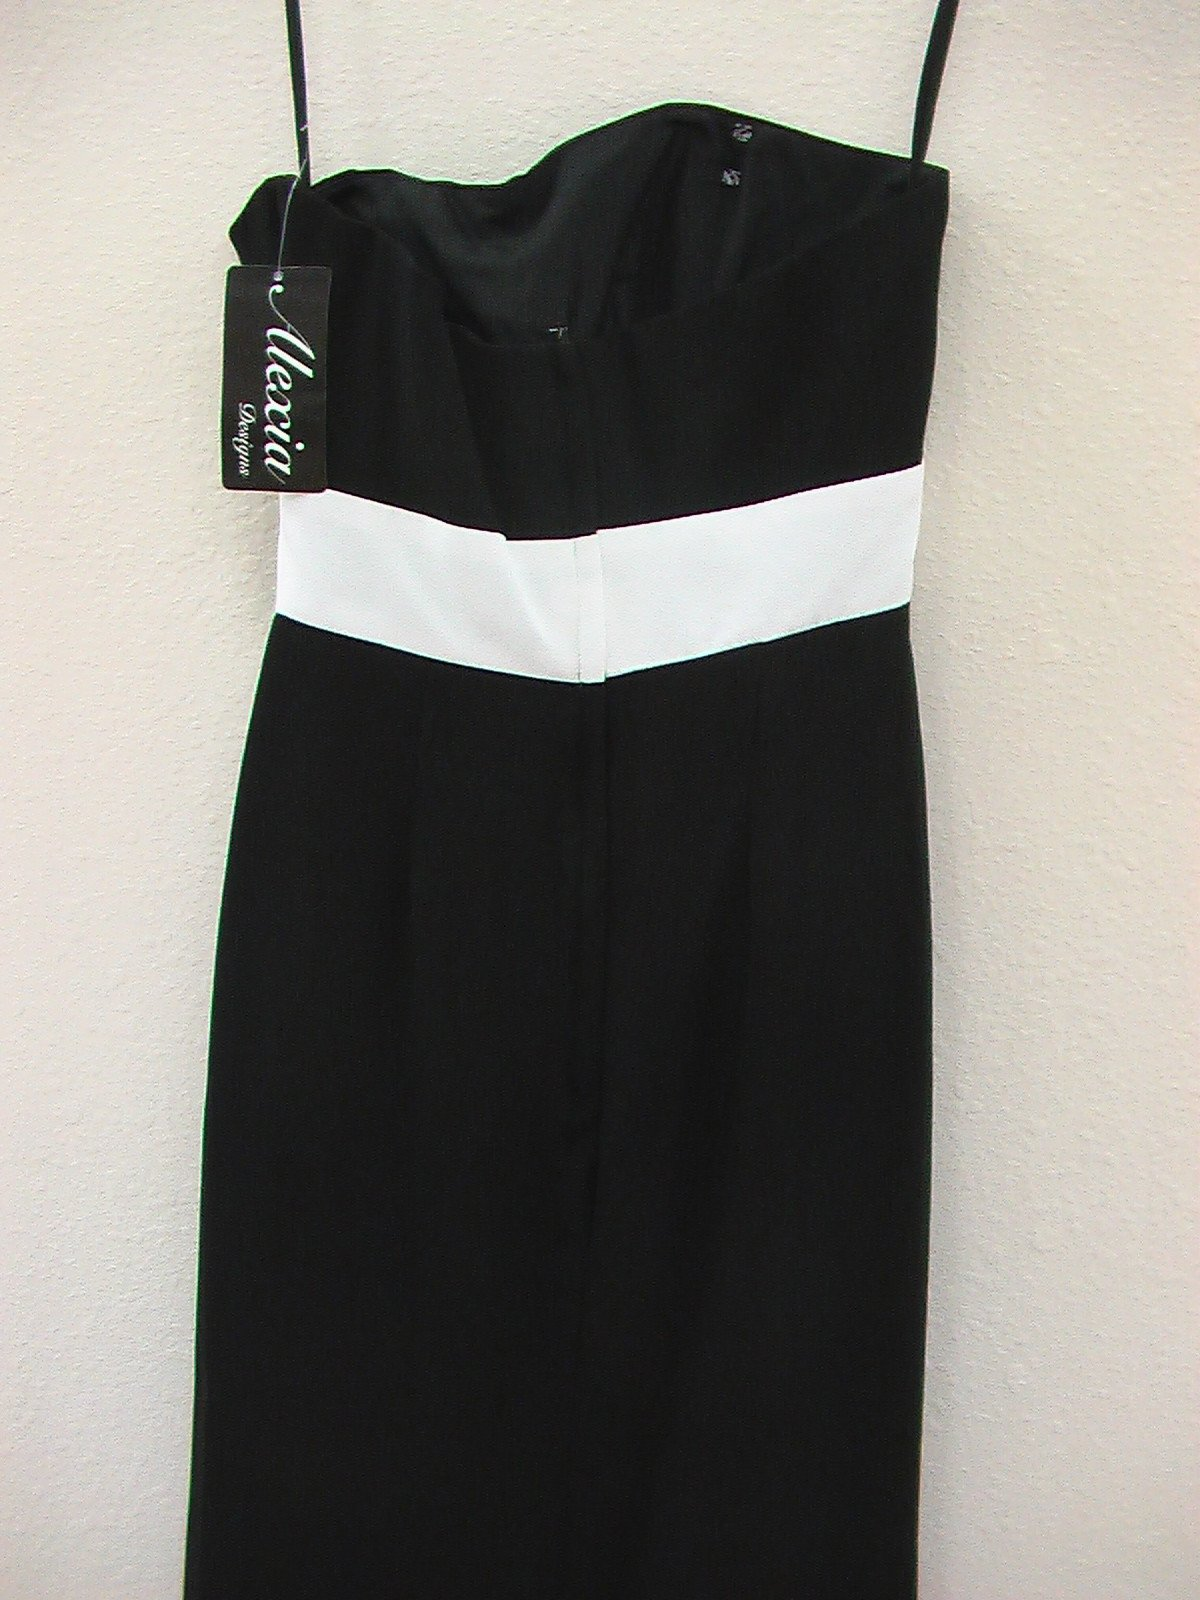 Alexia 4064 Black/White size 6 In Stock Bridesmaid Dress-NEW - Tom's Bridal